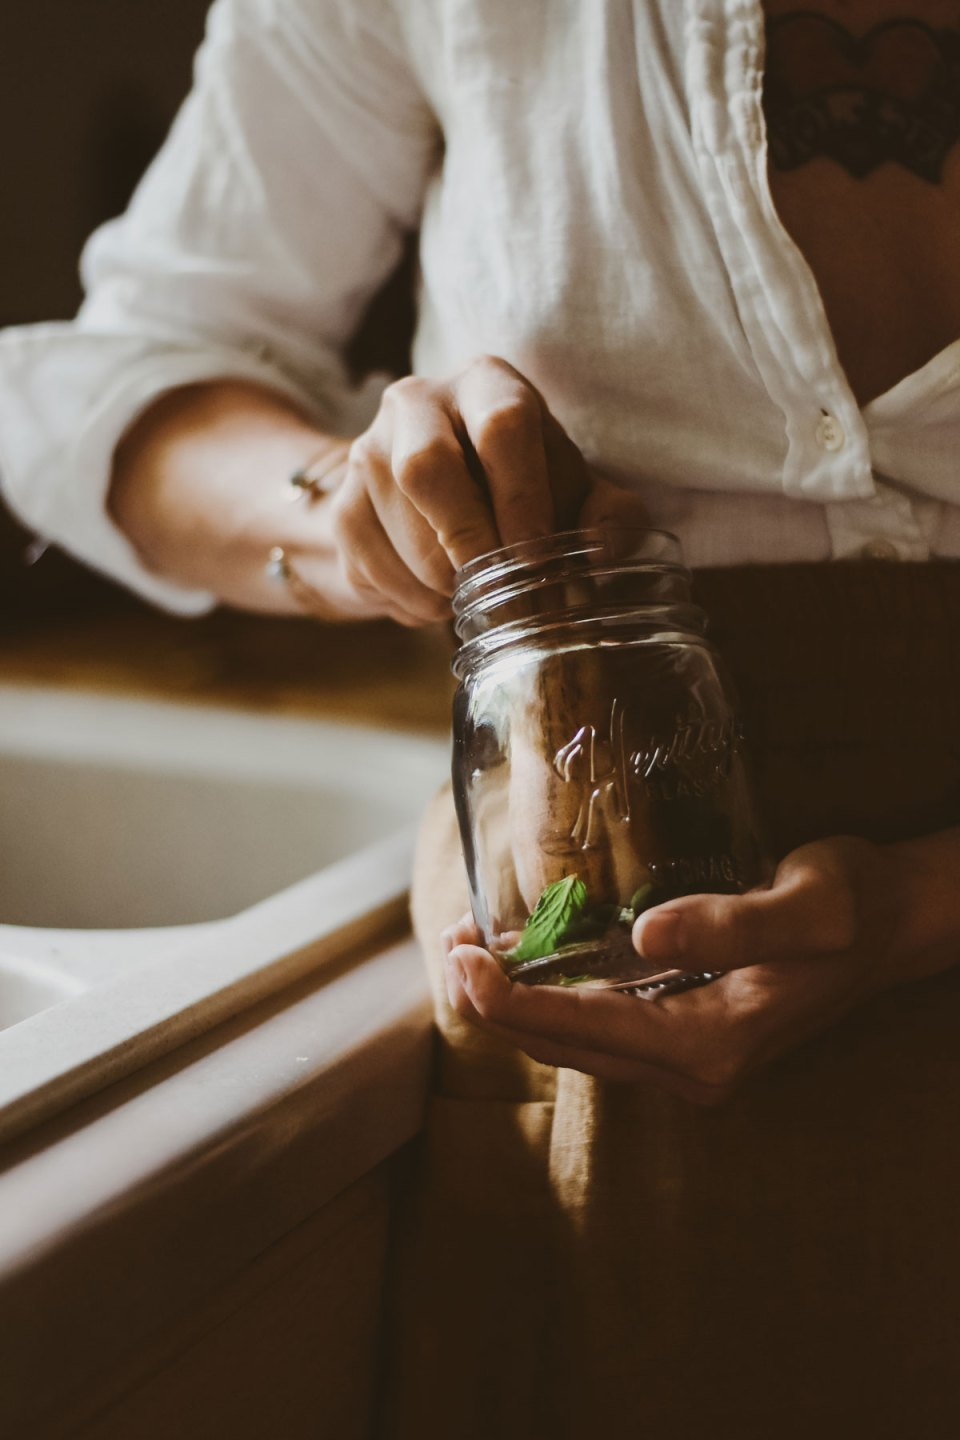 A woman putting herbs into a glass jar in kitchen